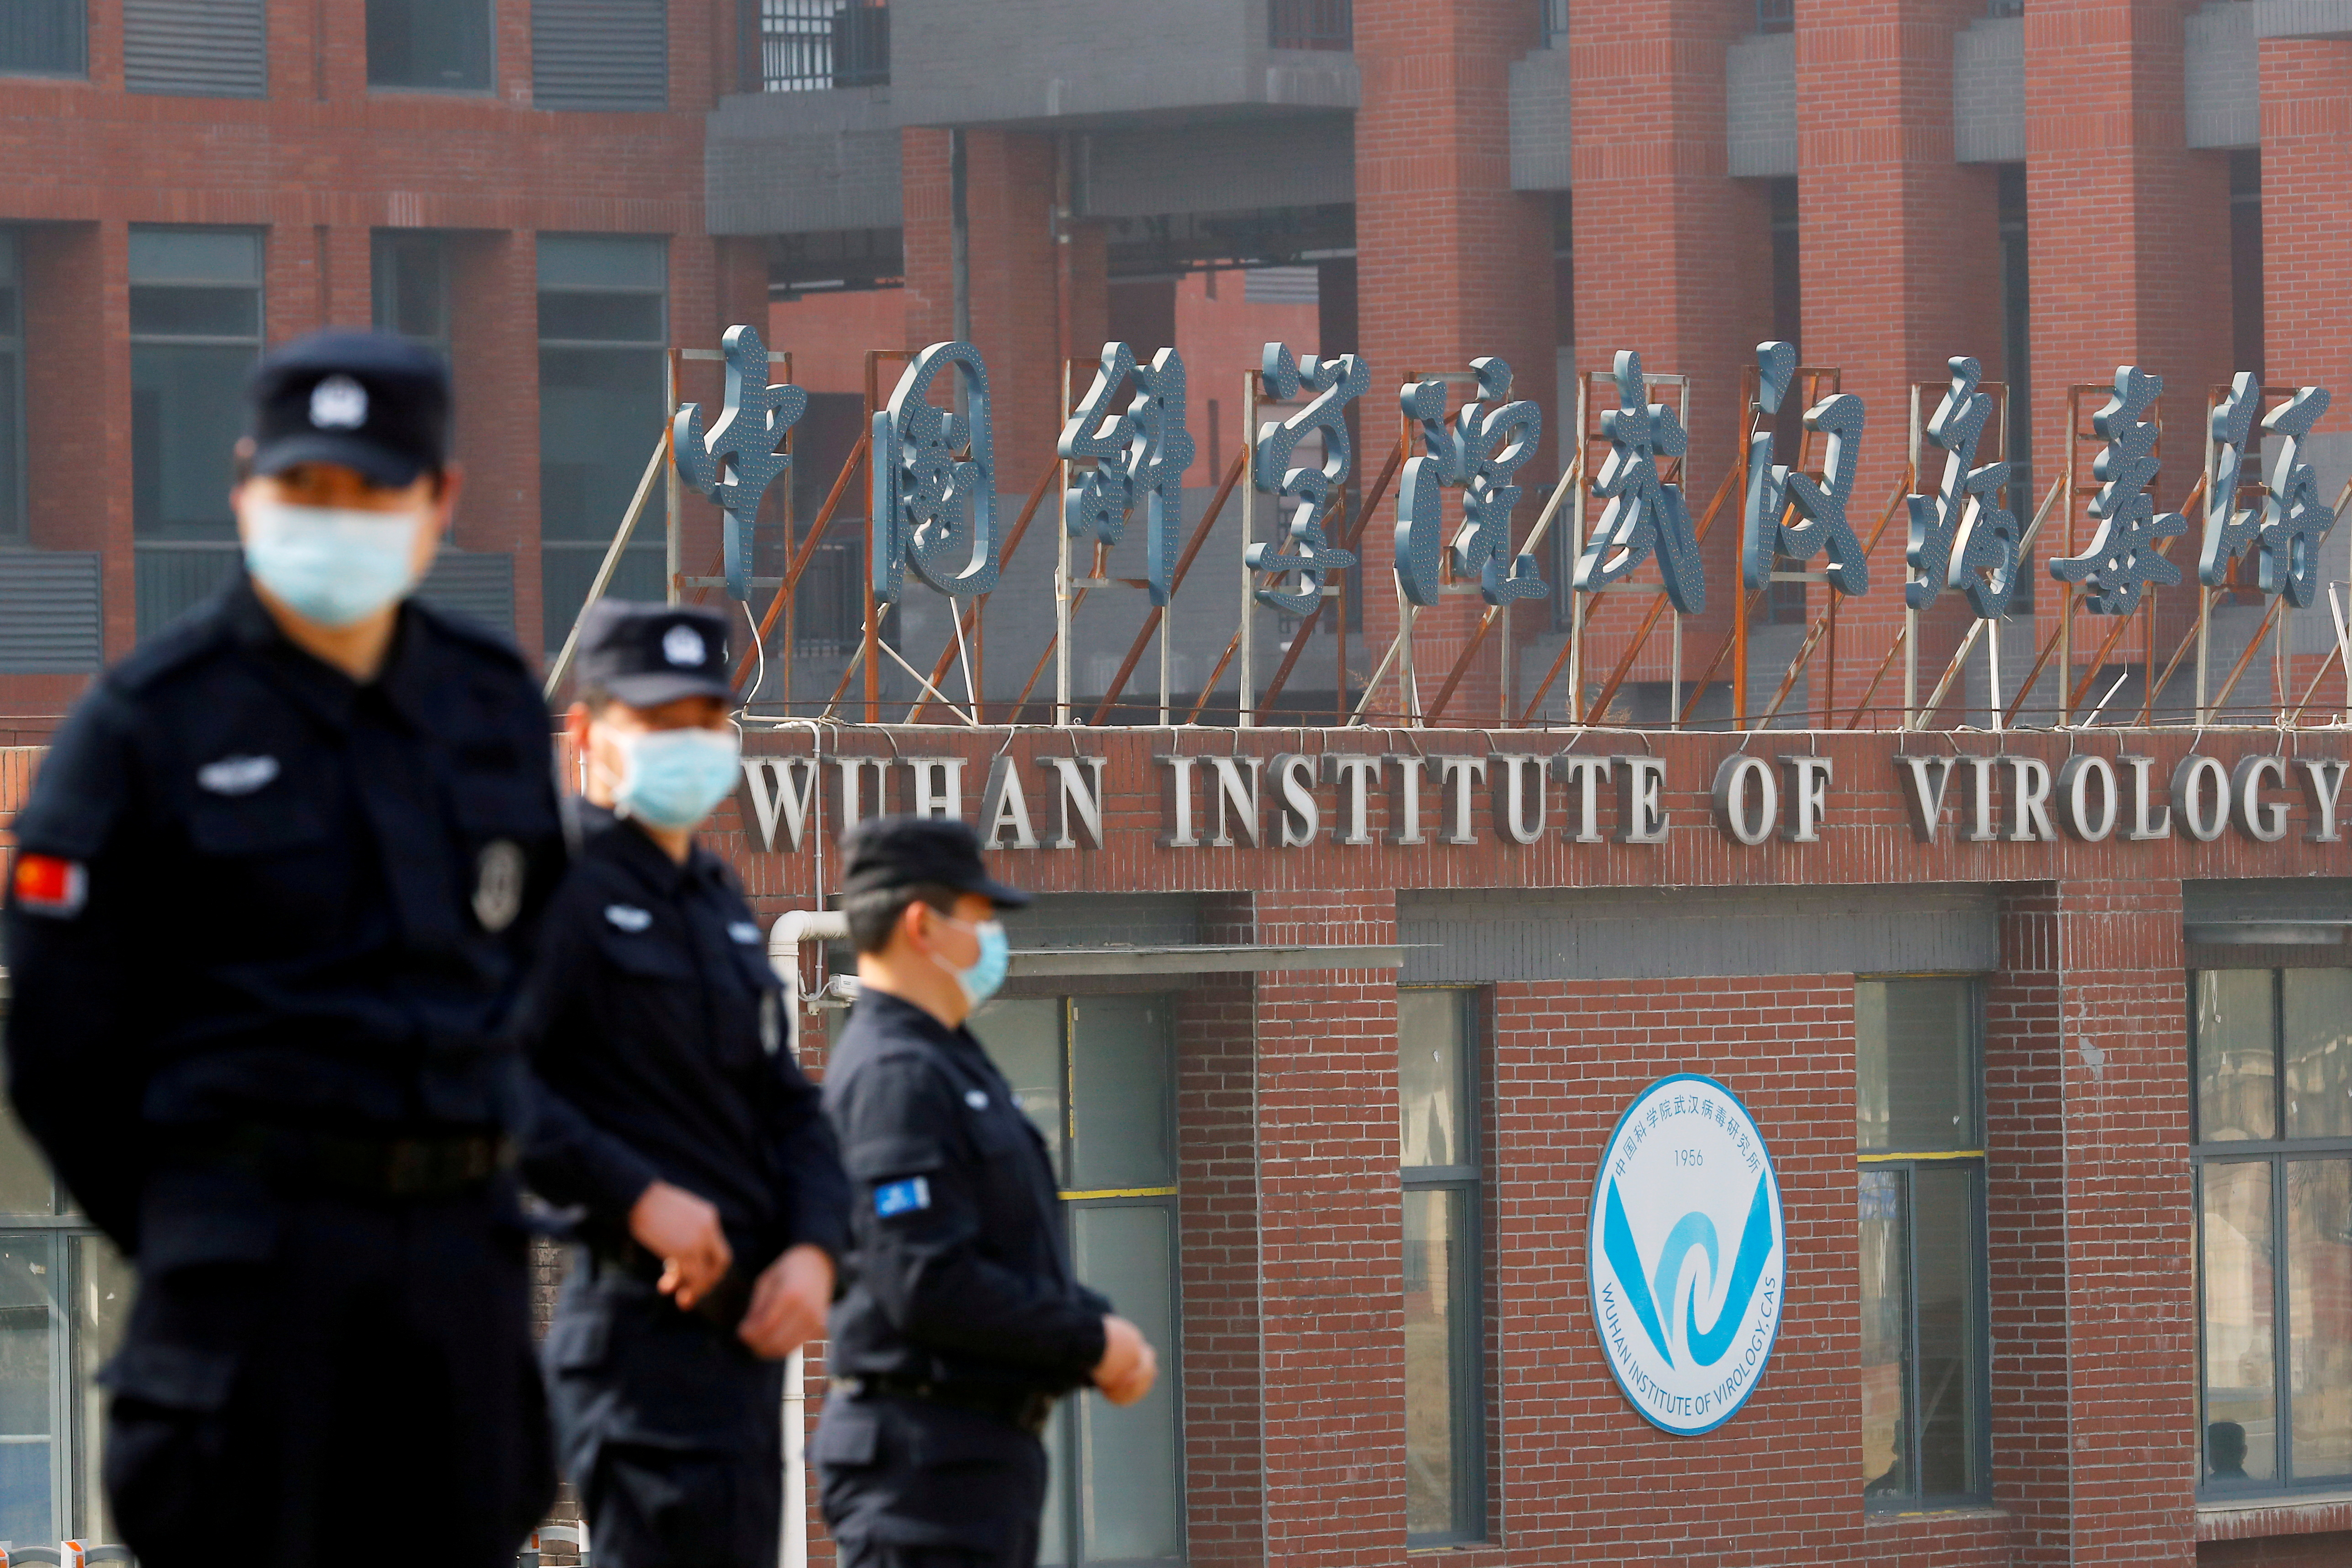 Security personnel keep watch outside the Wuhan Institute of Virology during the visit by the World Health Organization (WHO) team tasked with investigating the origins of the coronavirus disease (COVID-19), inWuhan, Hubei province, China February 3, 2021. REUTERS/Thomas Peter